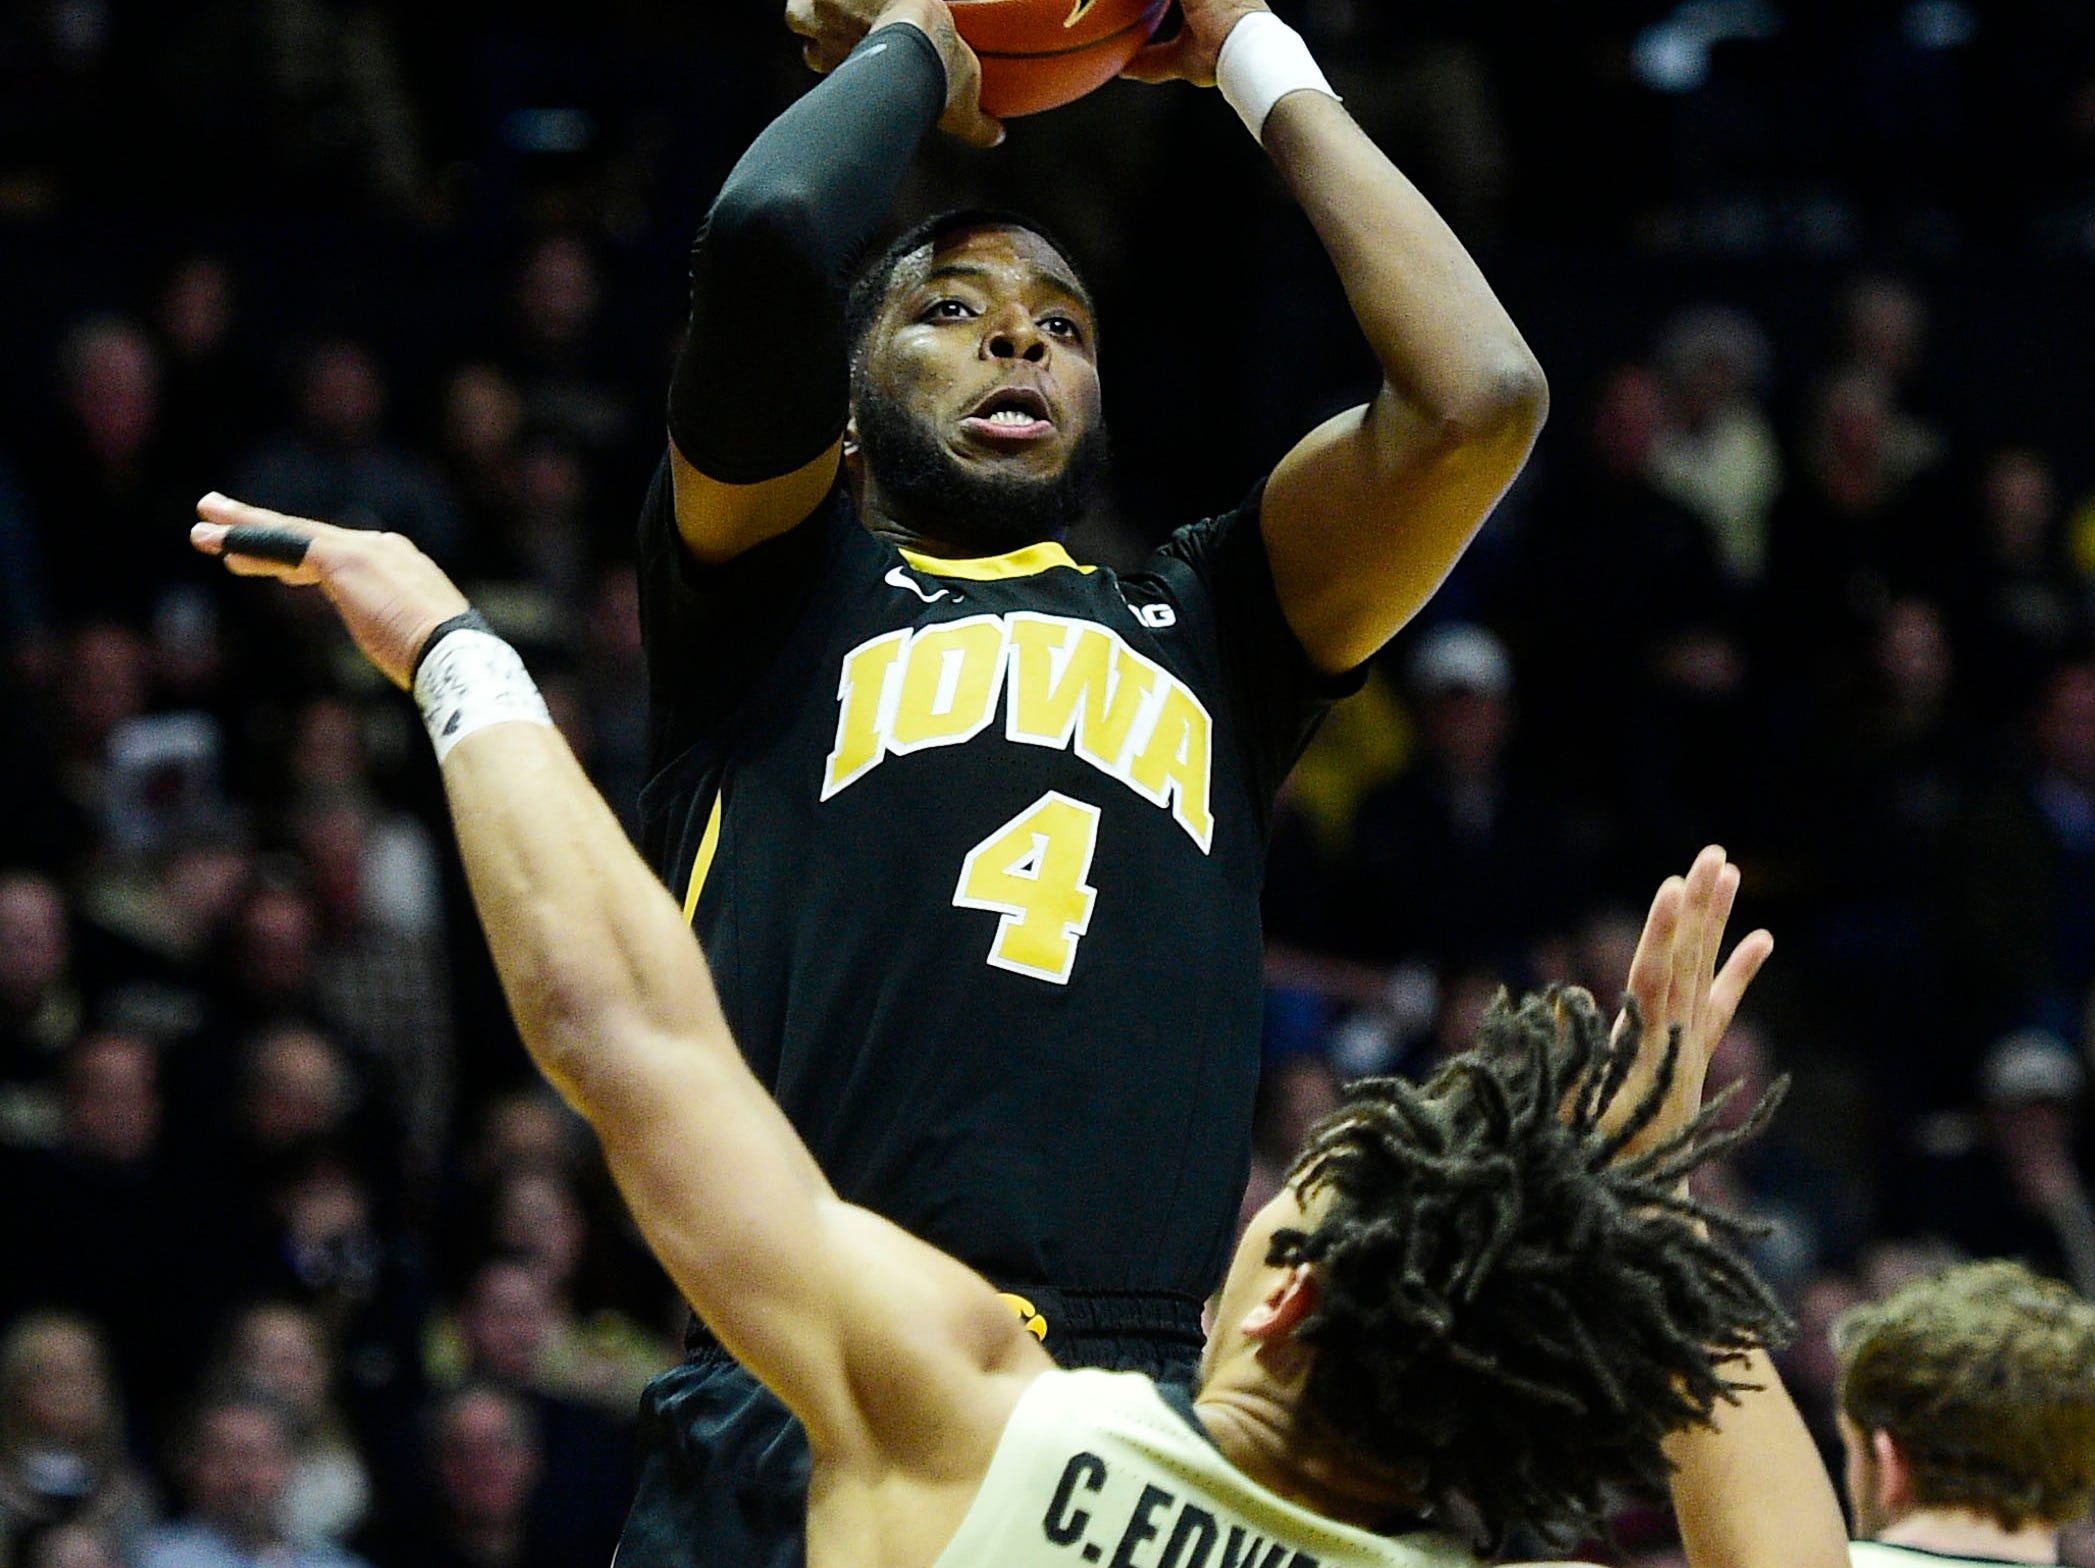 Jan 3, 2019; West Lafayette, IN, USA;  Iowa Hawkeyes guard Isaiah Moss (4) shoots over Purdue Boilermakers guard Carsen Edwards (3) in the first half at Mackey Arena. Mandatory Credit: Thomas J. Russo-USA TODAY Sports